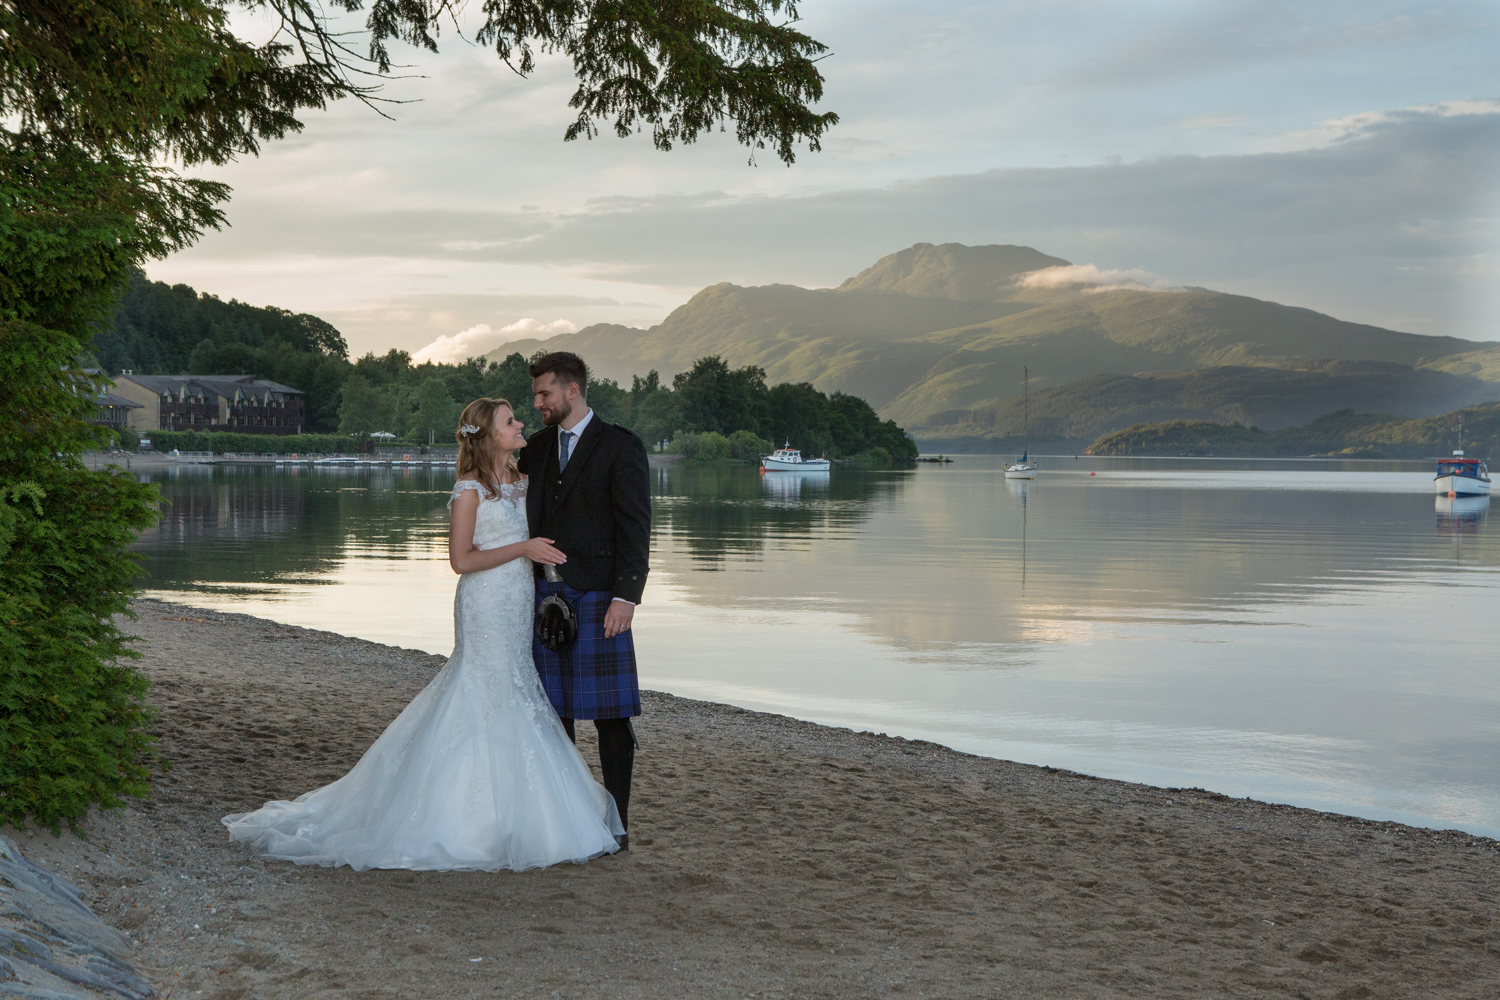 Wedding-photography-Lodge-on-The-Loch-028